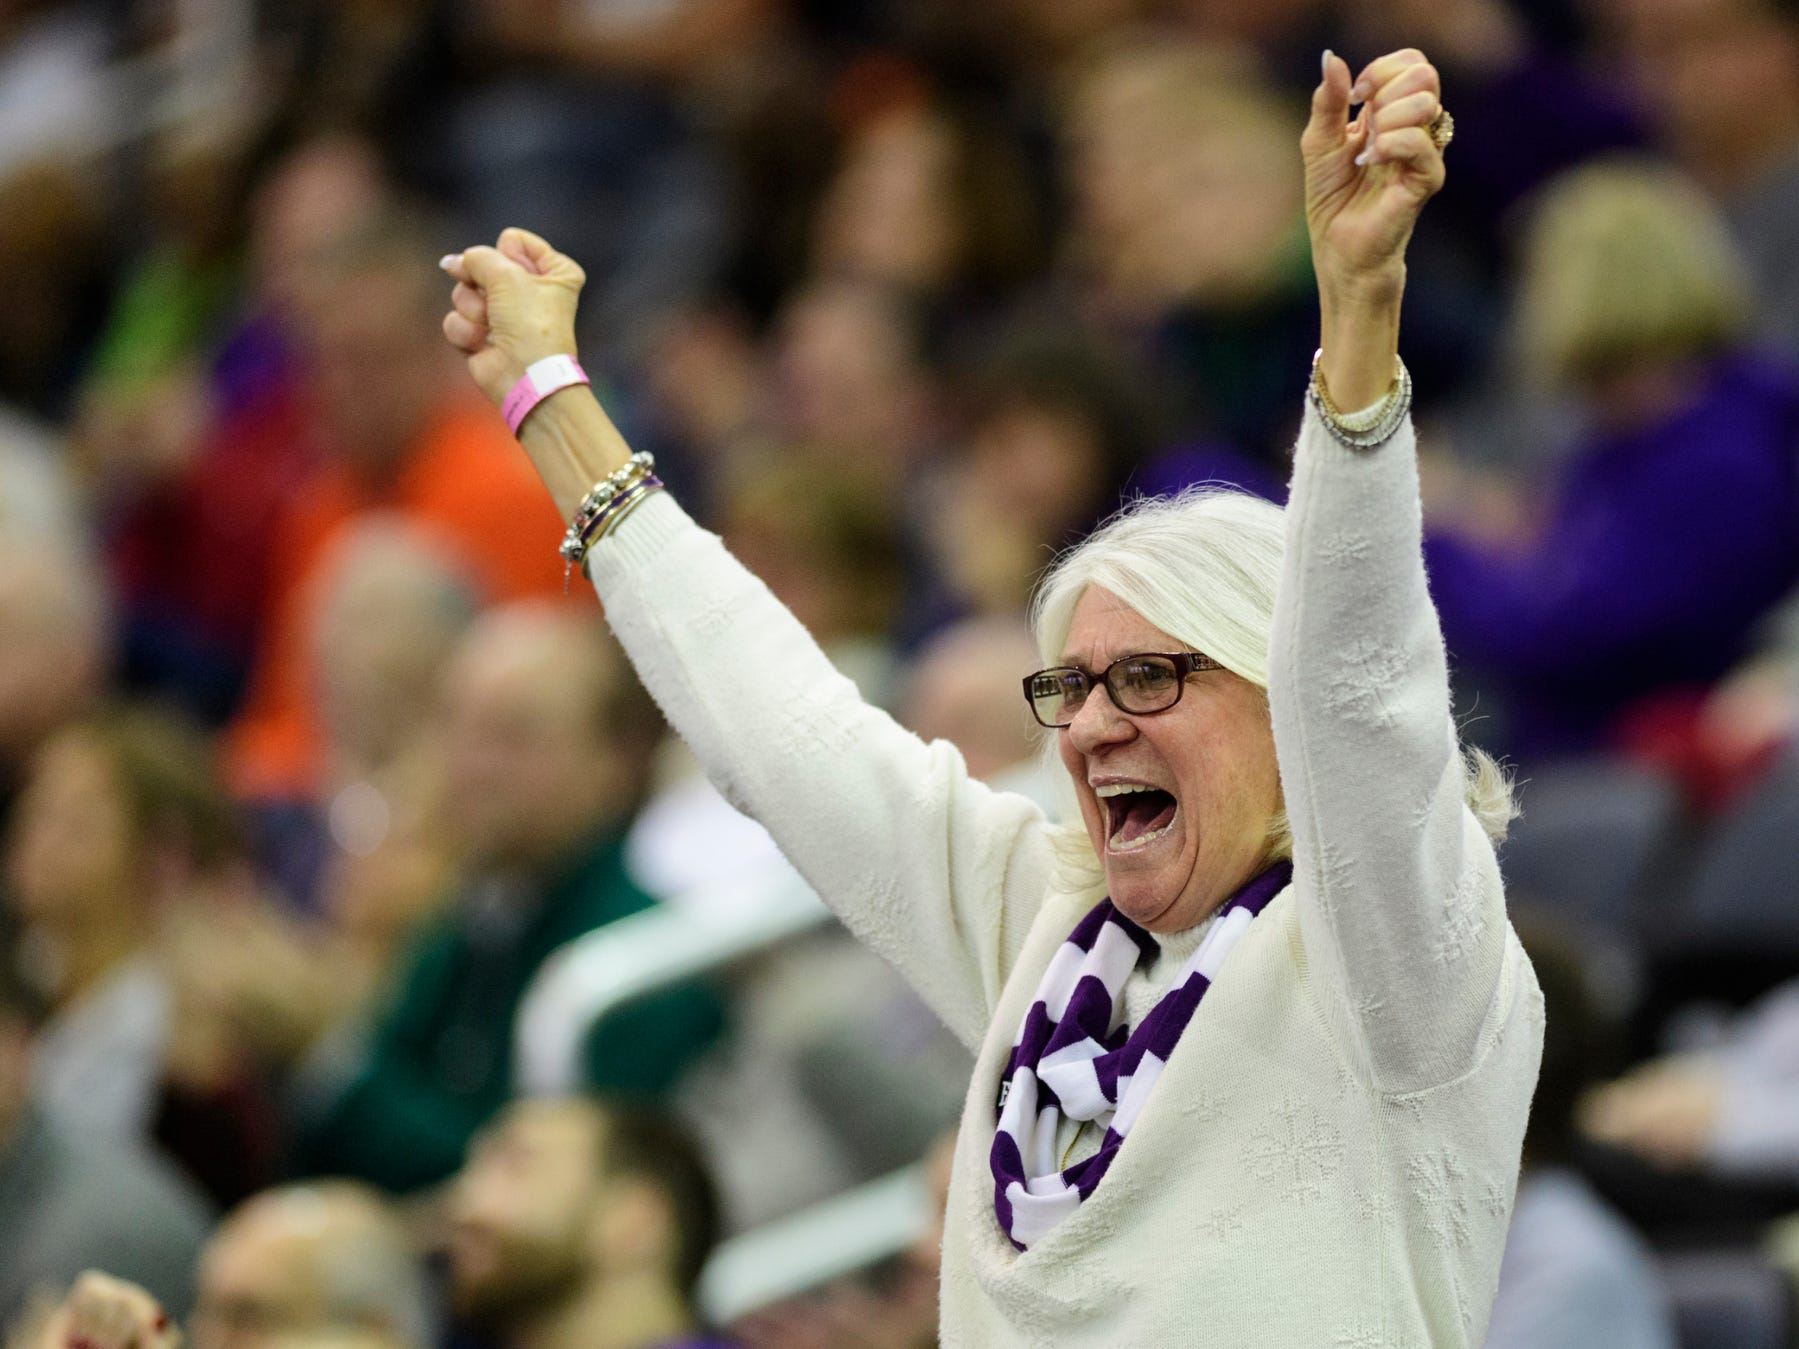 Phyllis Steber cheers for the University of Evansville Purple Aces as they secure their lead over the University of Wisconsin-Green Bay Phoenix with less than a minute left in the game at Ford Center in Evansville, Ind., Saturday, Dec. 22, 2018. The Purple Aces defeated the Phoenix 80-75 in their last non-conference game of the season.